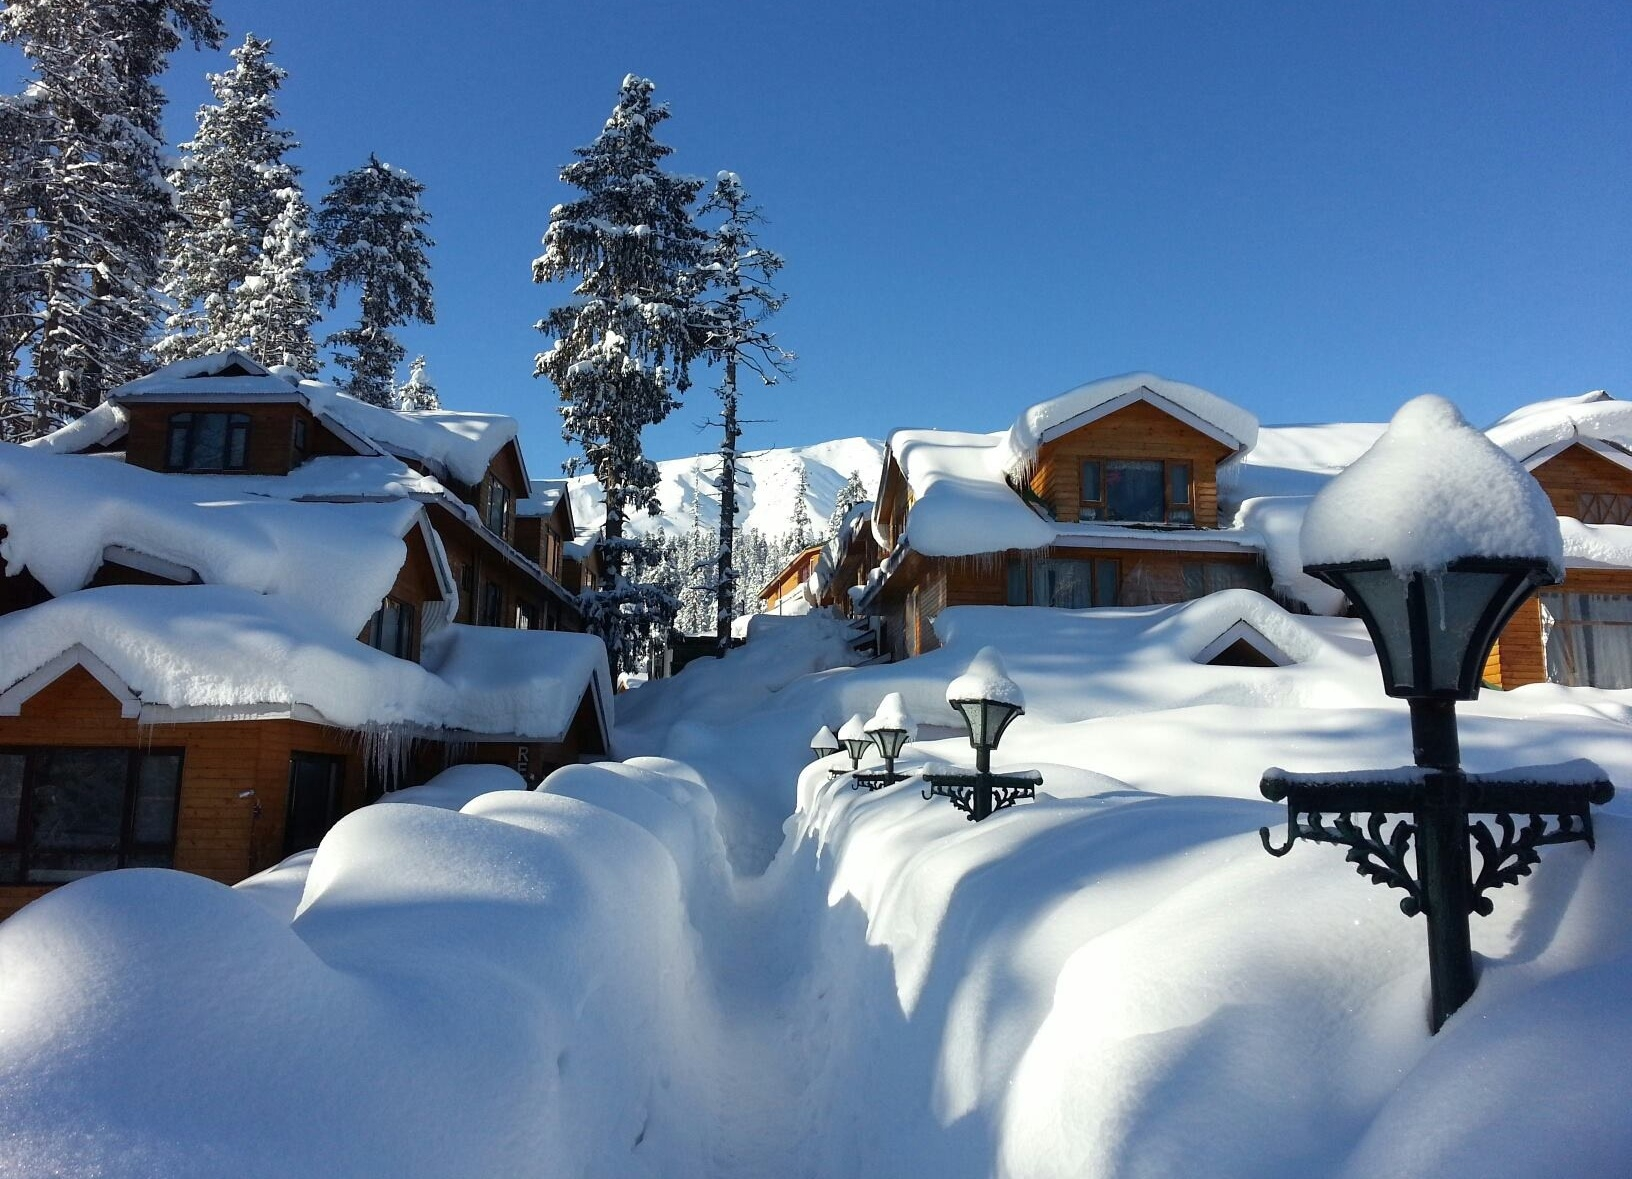 J&K lifeline on standstill as 21 inch snowfall sweeps the state; Gulmarg the coldest